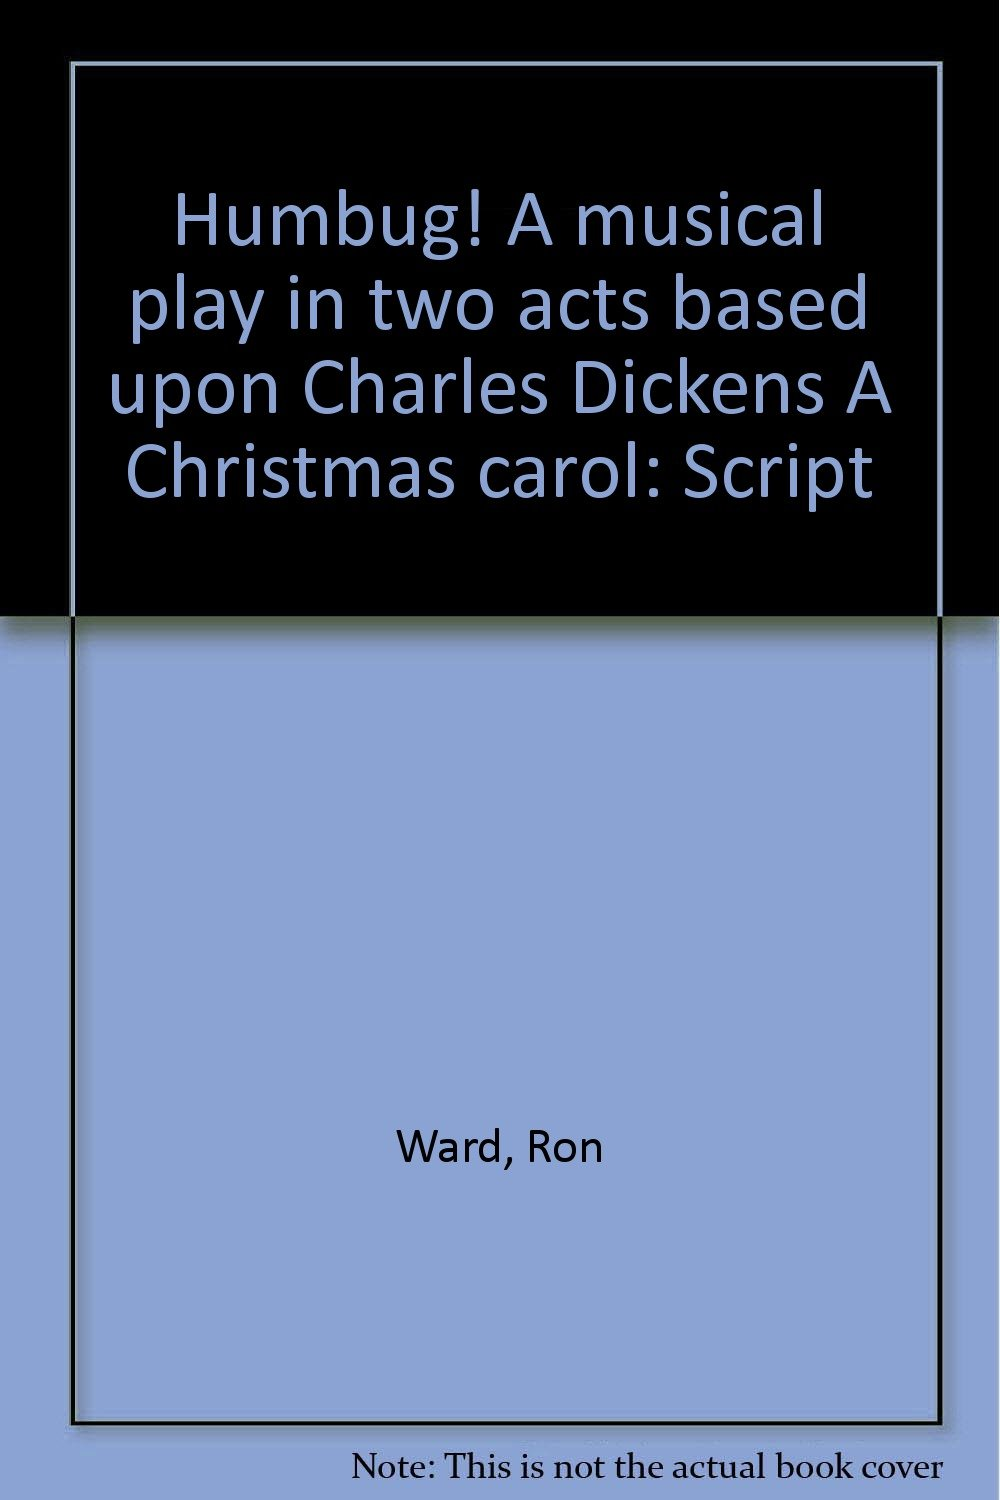 Christmas Carol Musical Script.Humbug A Musical Play In Two Acts Based Upon Charles